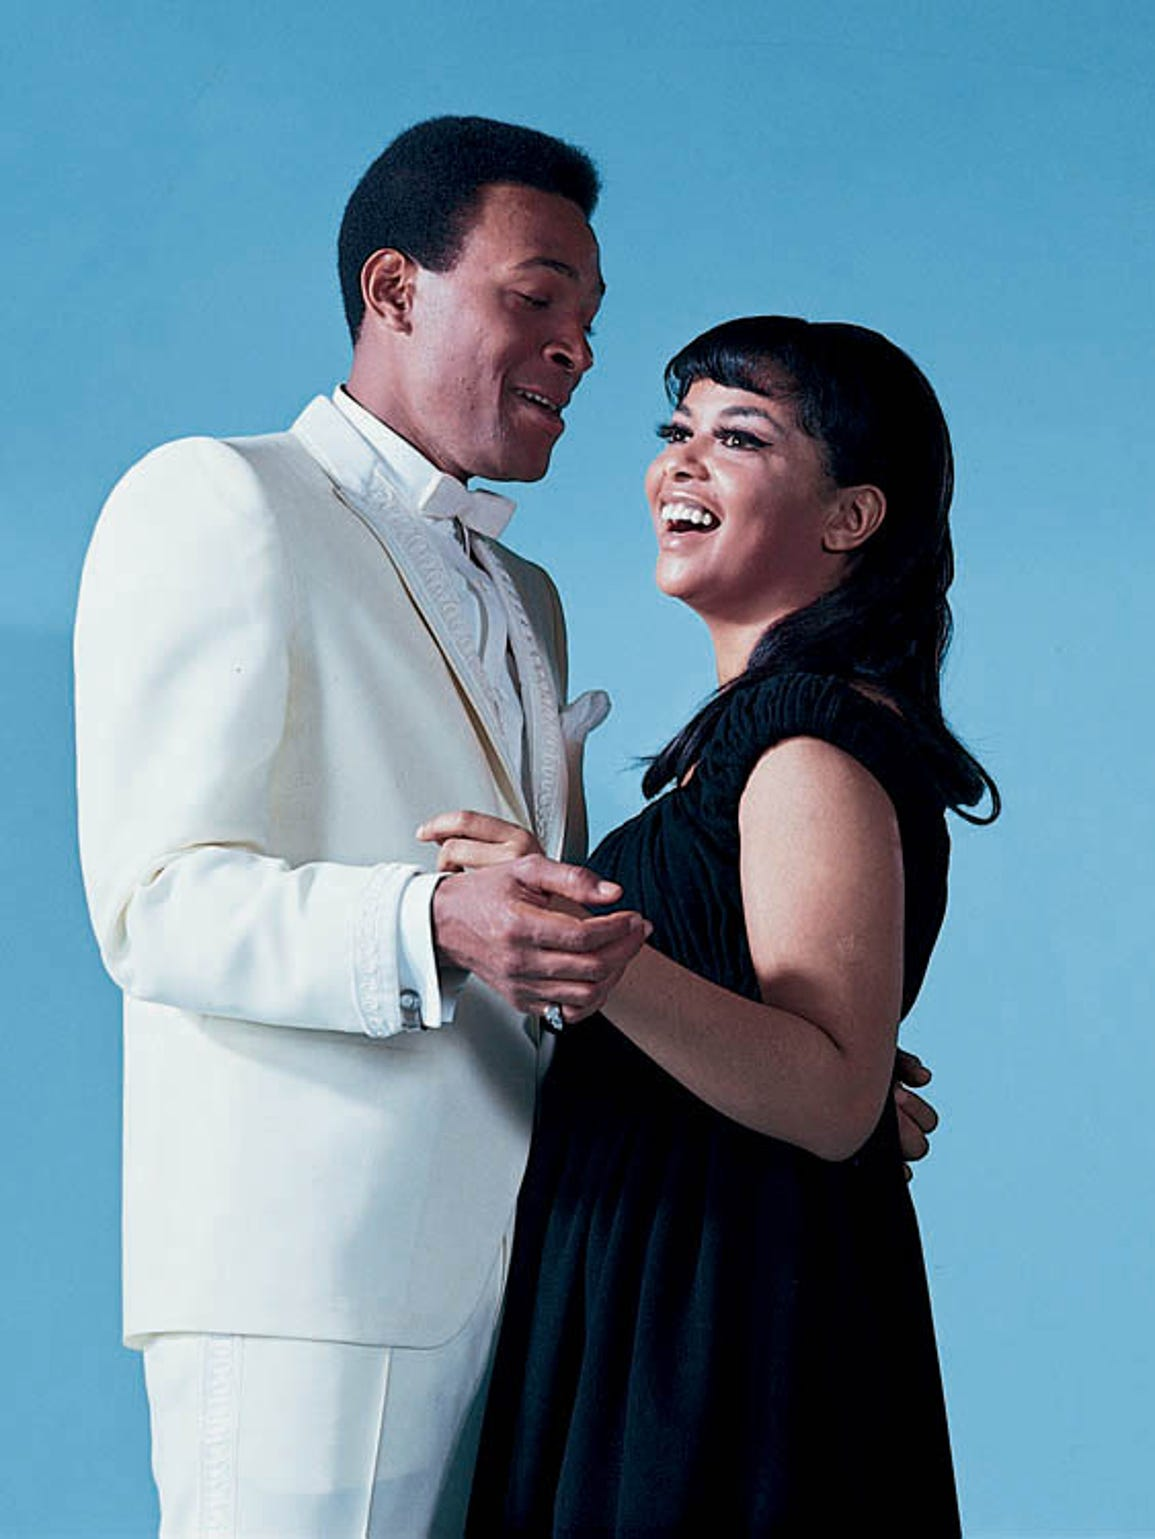 Marvin Gaye and Tammi Terrell in 1967